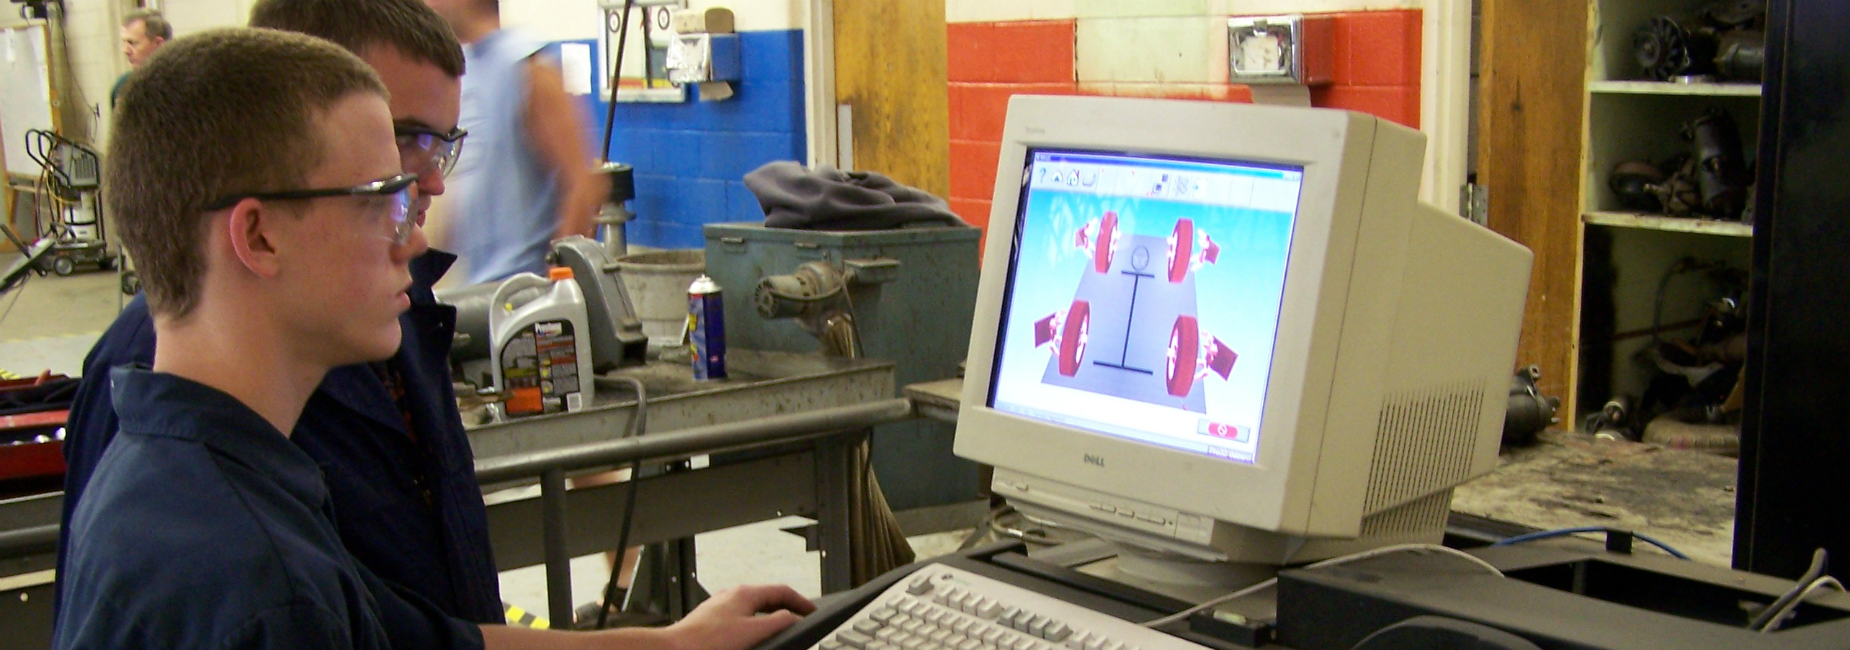 Students at Smyth Career & Technology Center use computerized tire alignment tool.